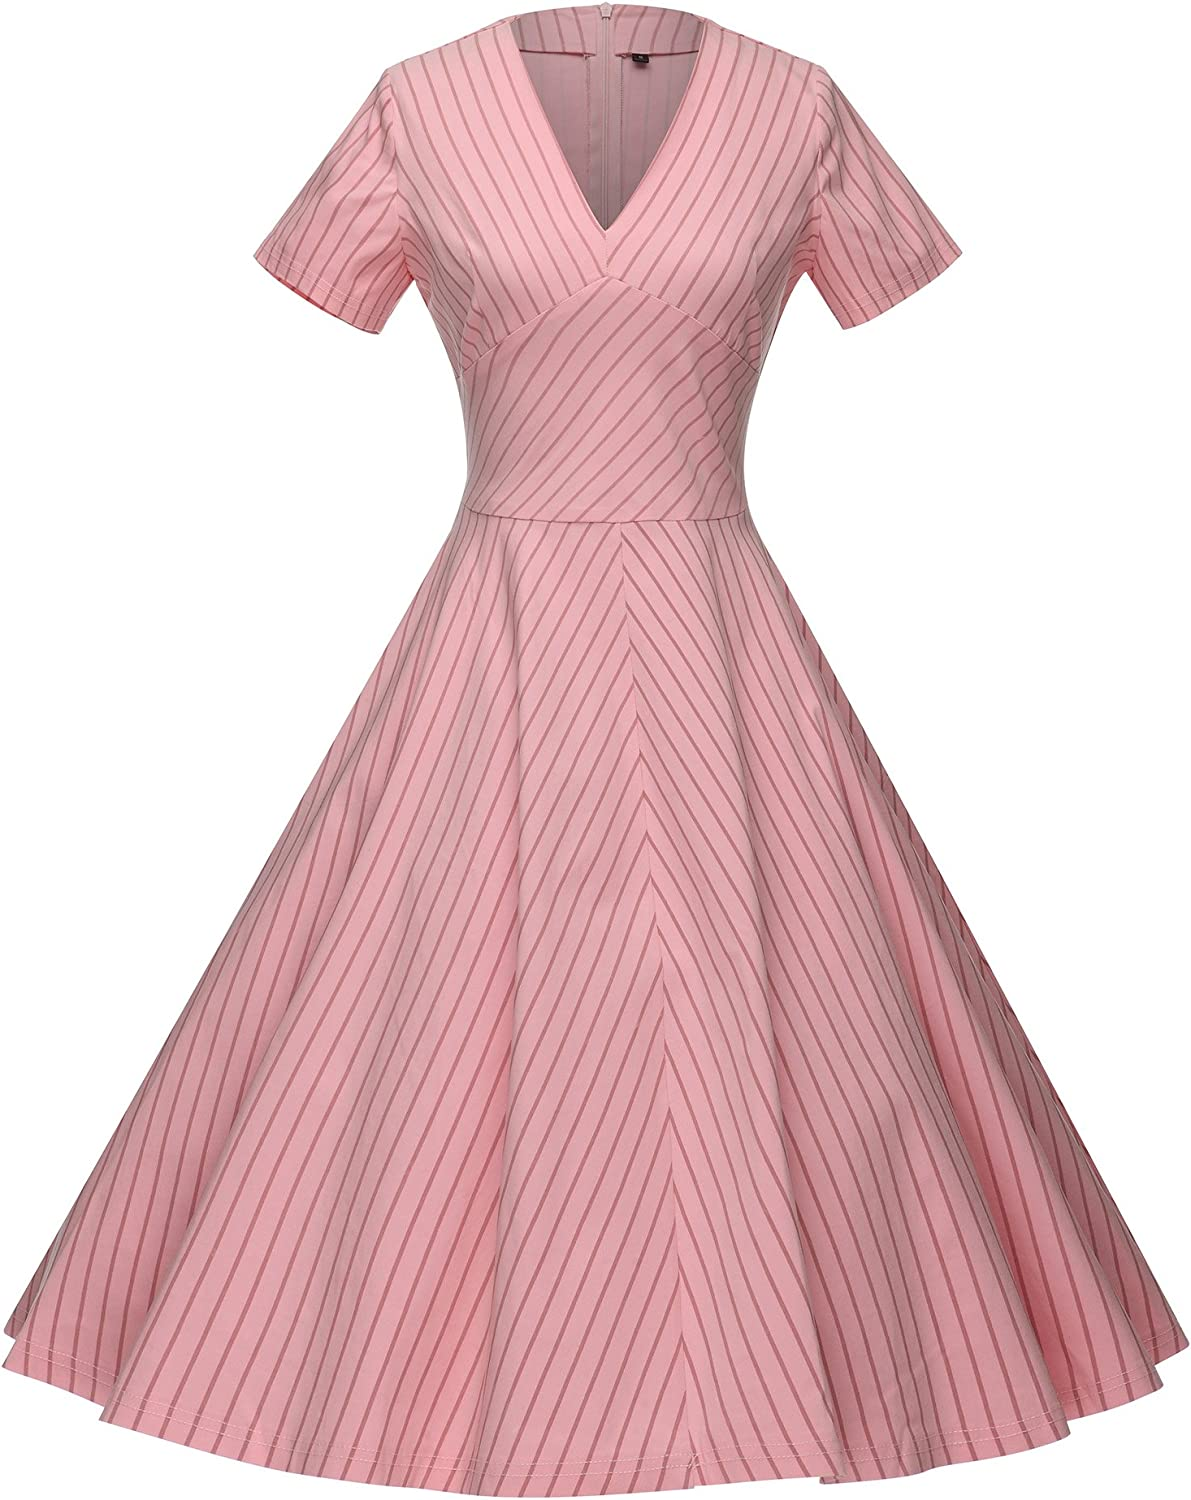 GownTown Women's 50s VNeck Vintage Cocktail Party Swing Dress